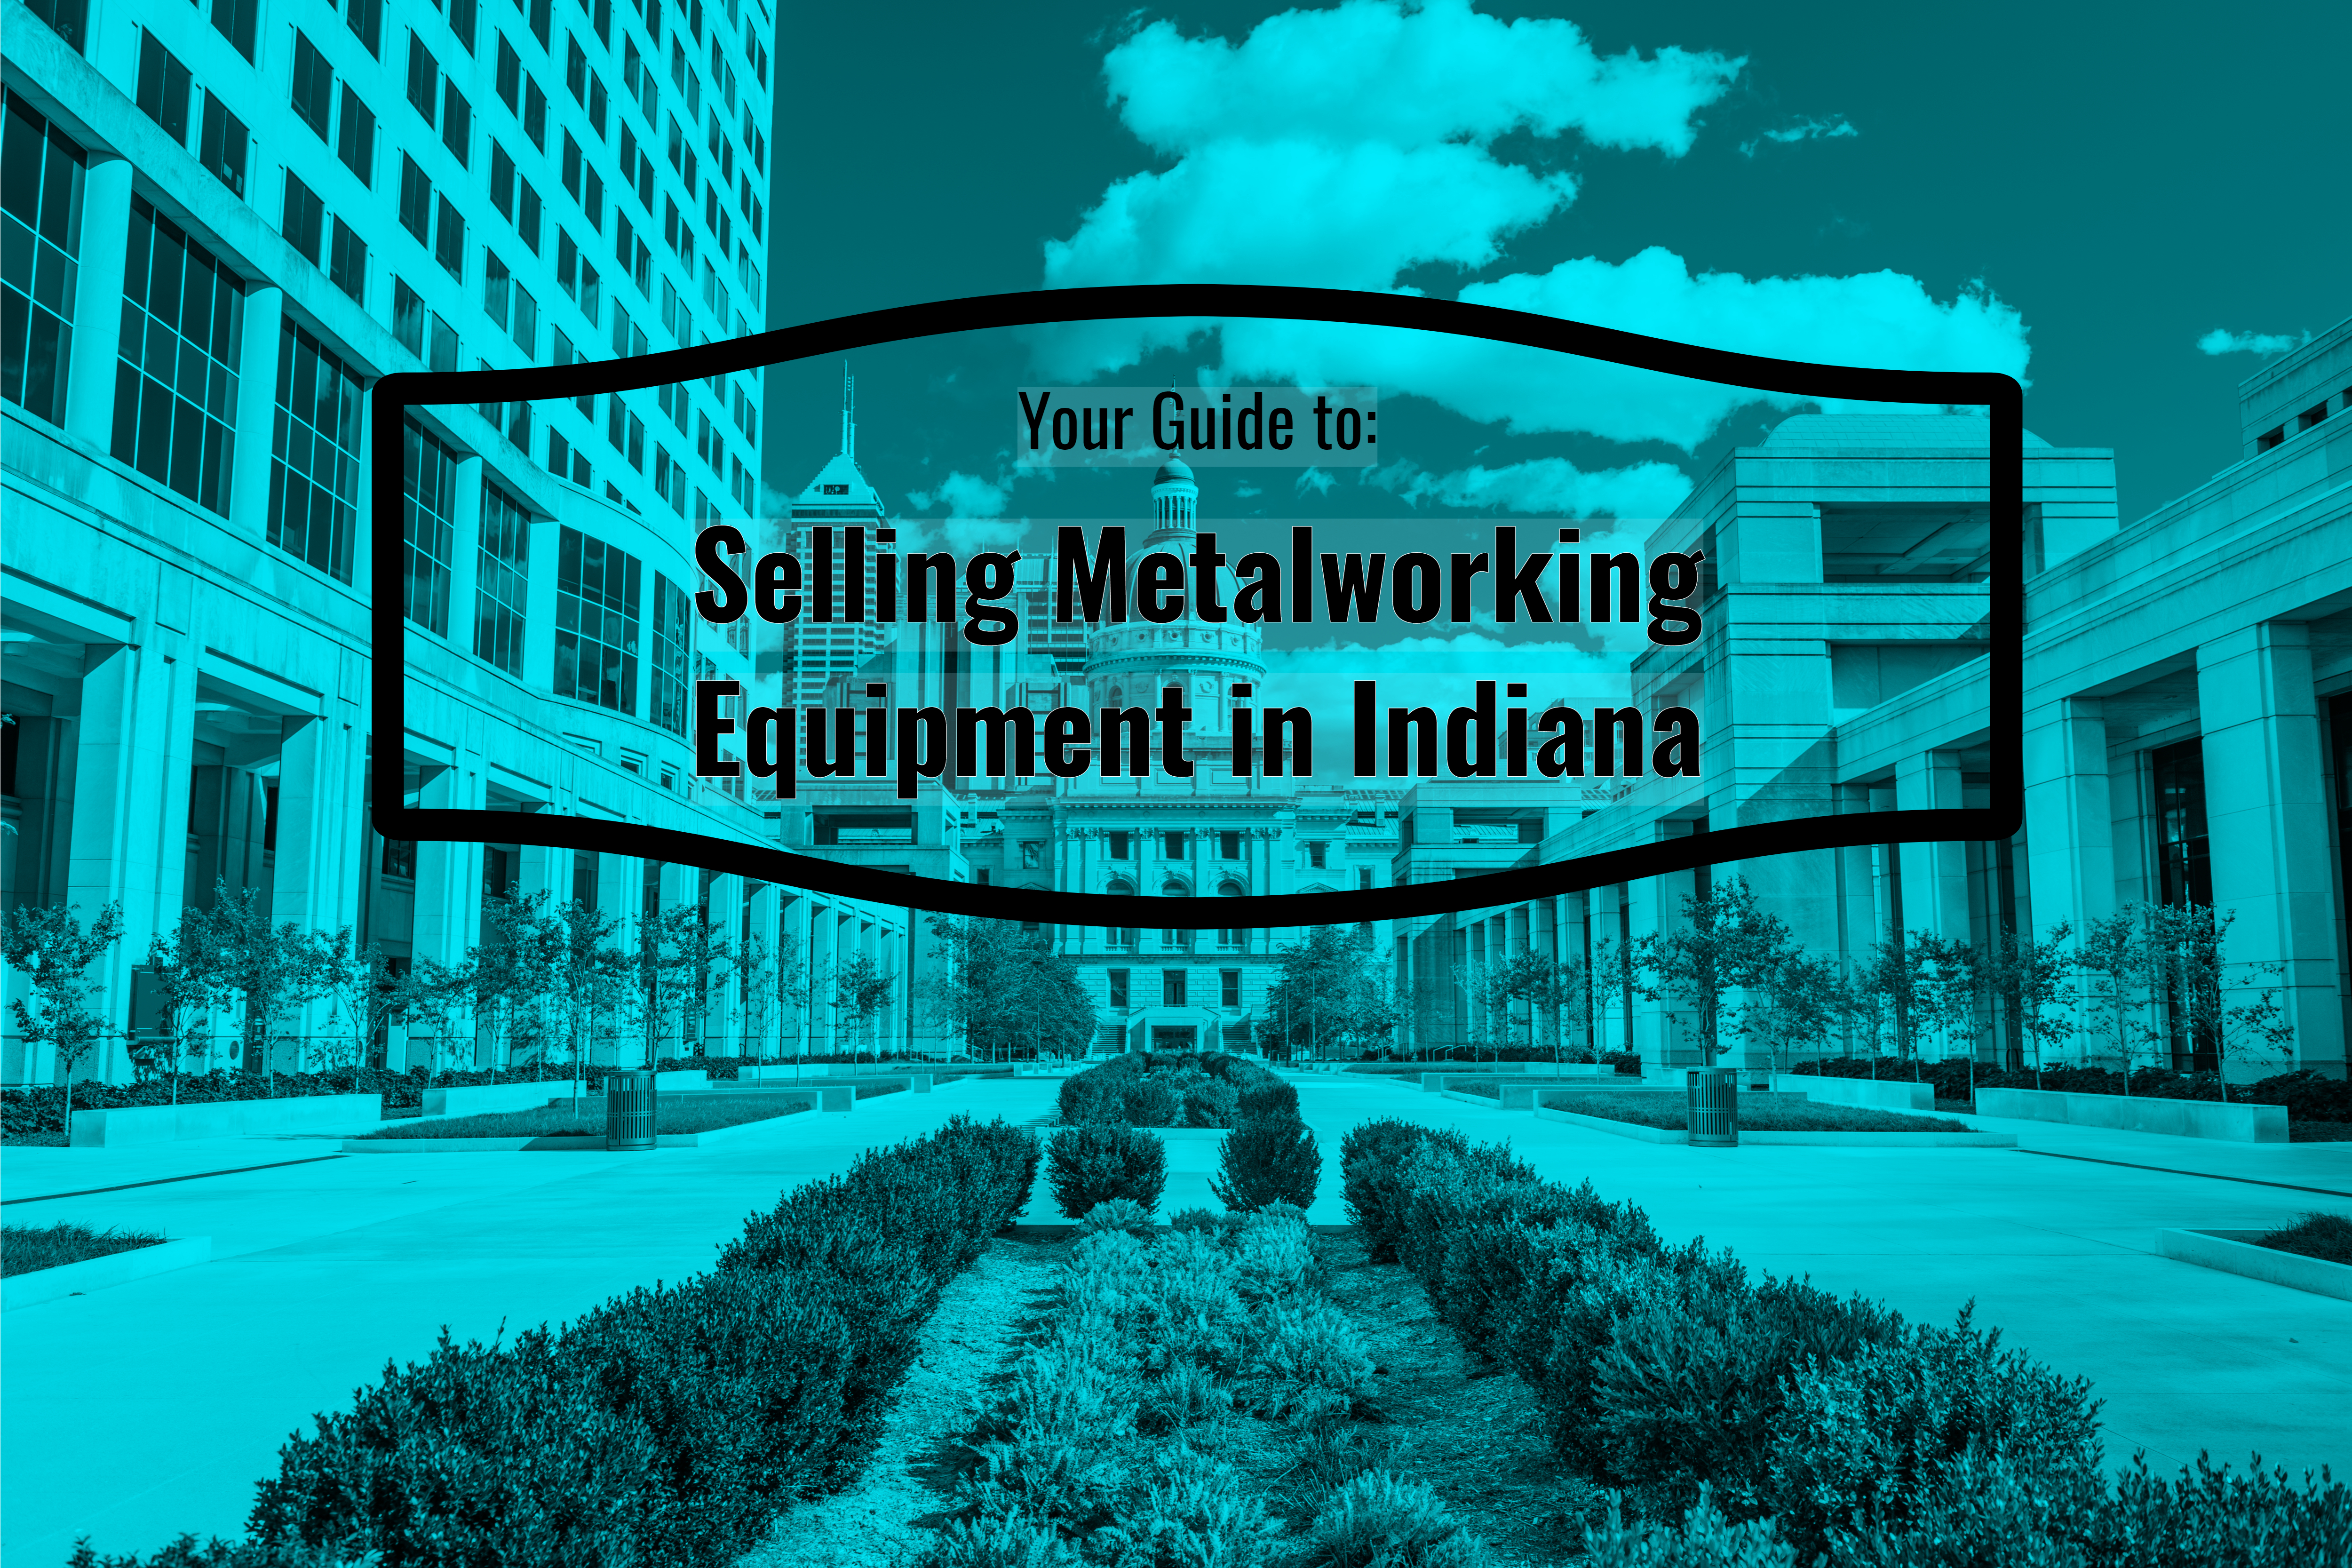 Your Guide to Selling Metalworking Equipment in Indiana